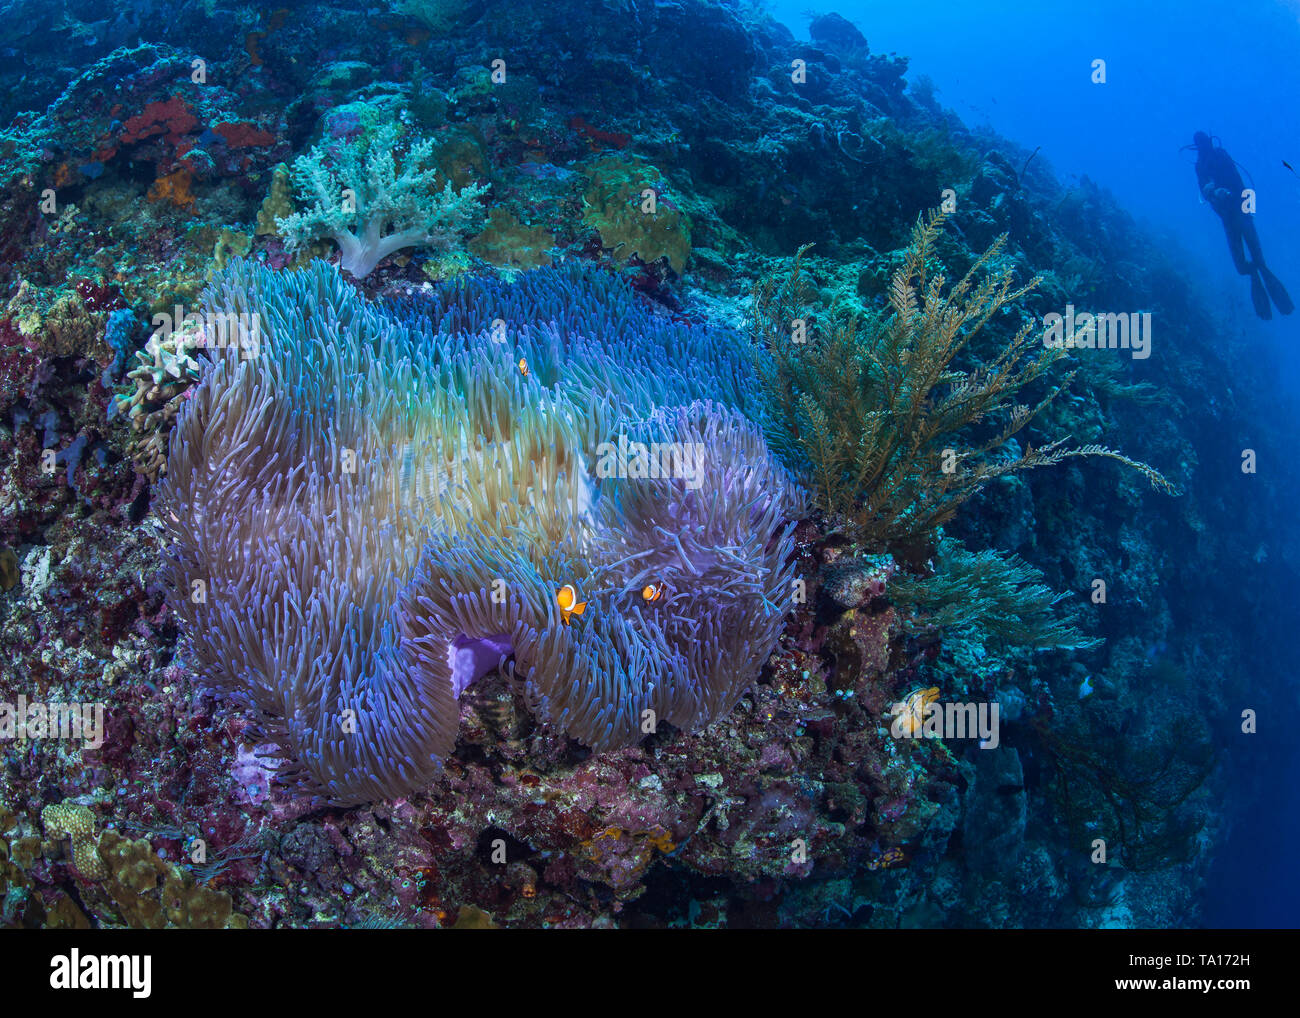 Bioluminescent magnificent anemone with clownfish nestling in its tentacles on a steep coral reef with scuba diver looking on in blue water background Stock Photo